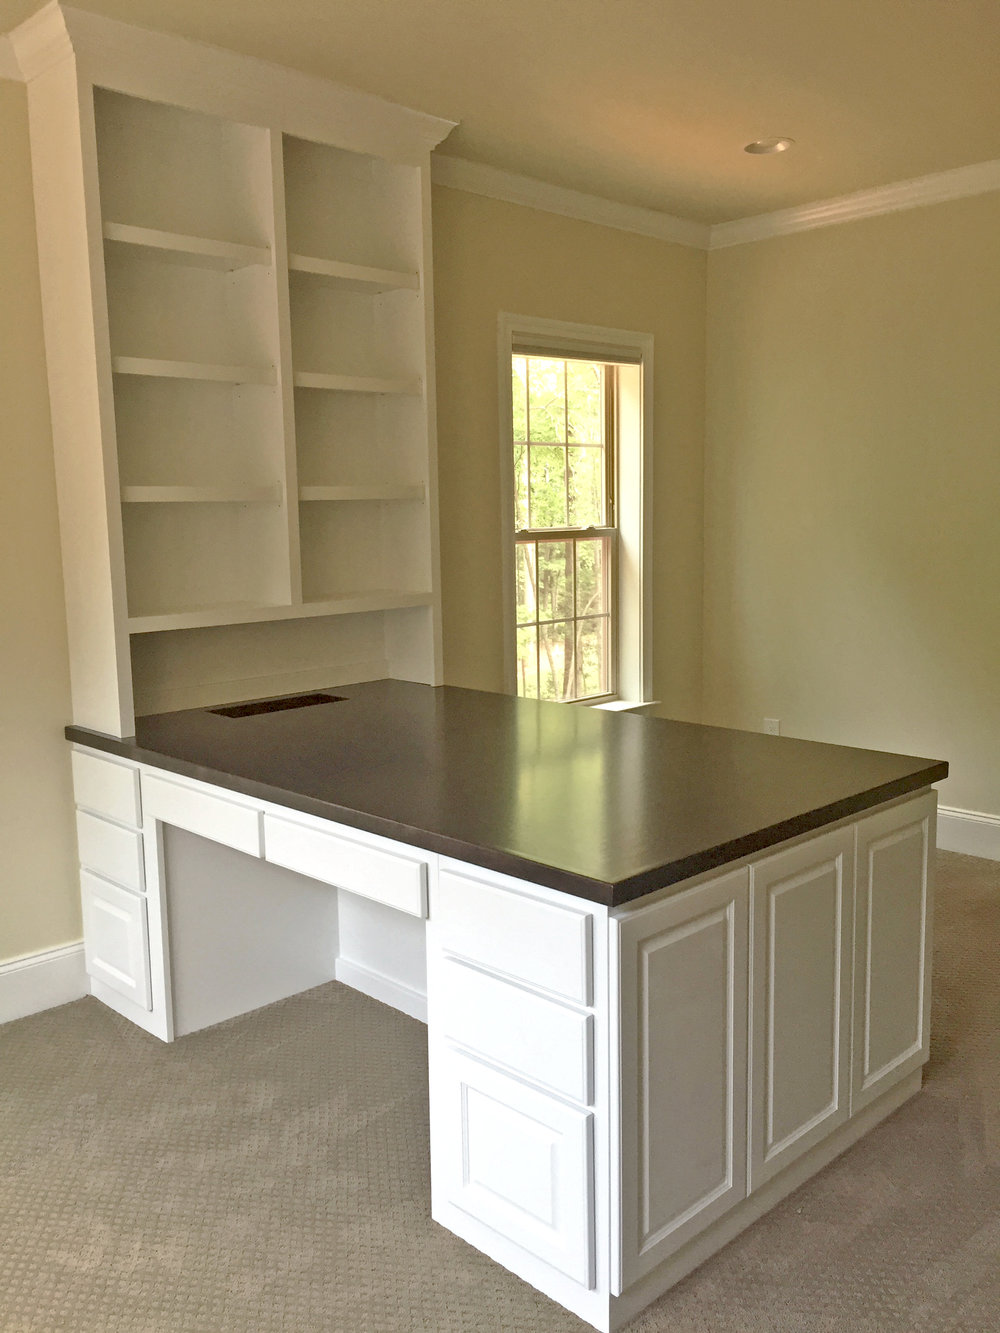 Built-In Desk